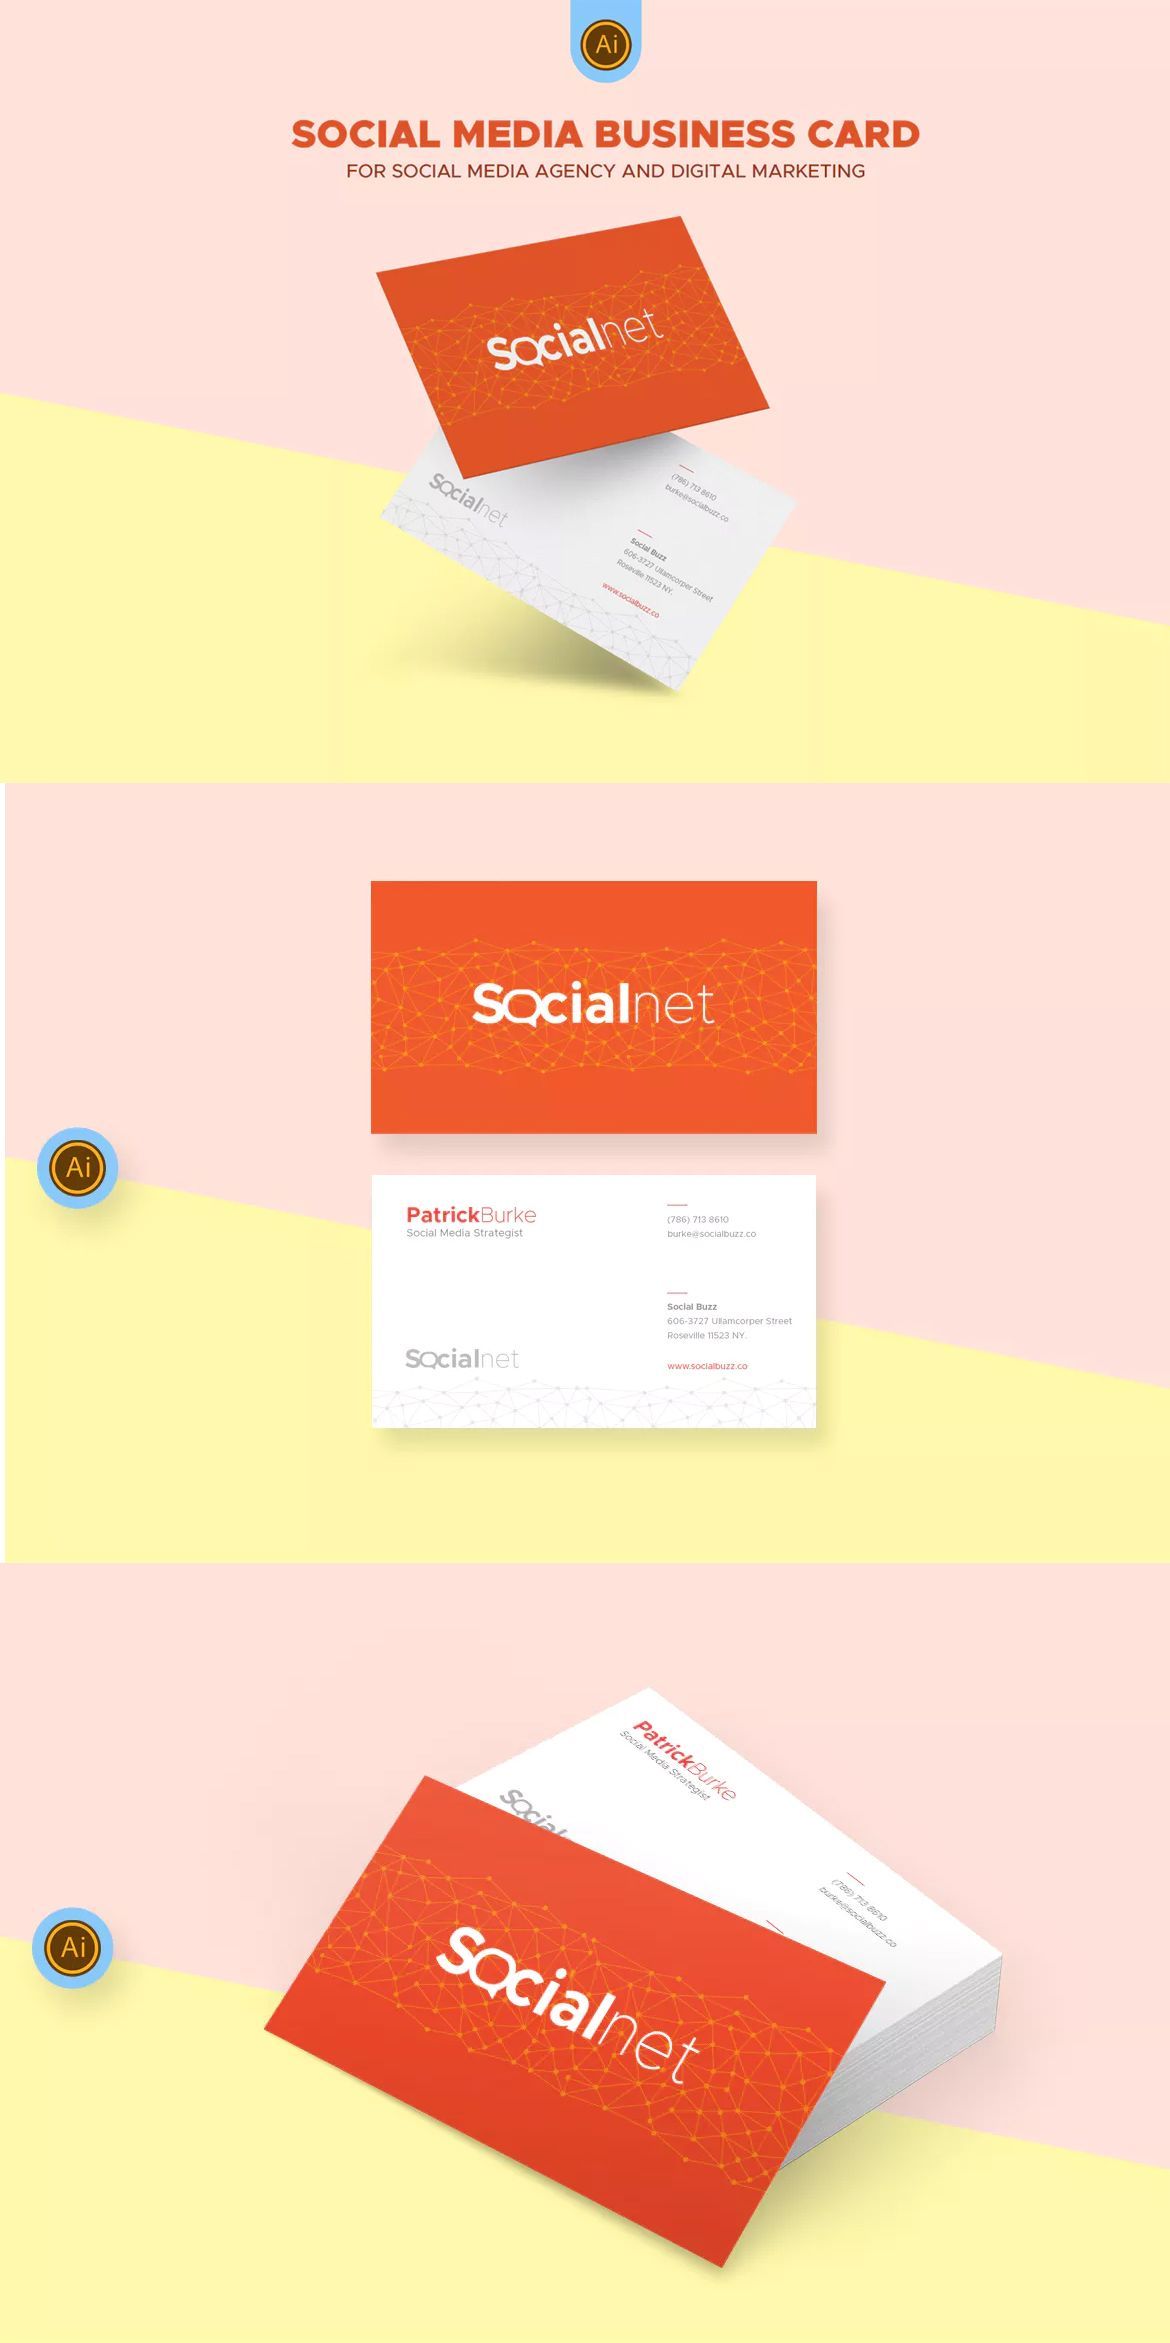 Social media business card template ai business card templates social media business card template ai friedricerecipe Choice Image